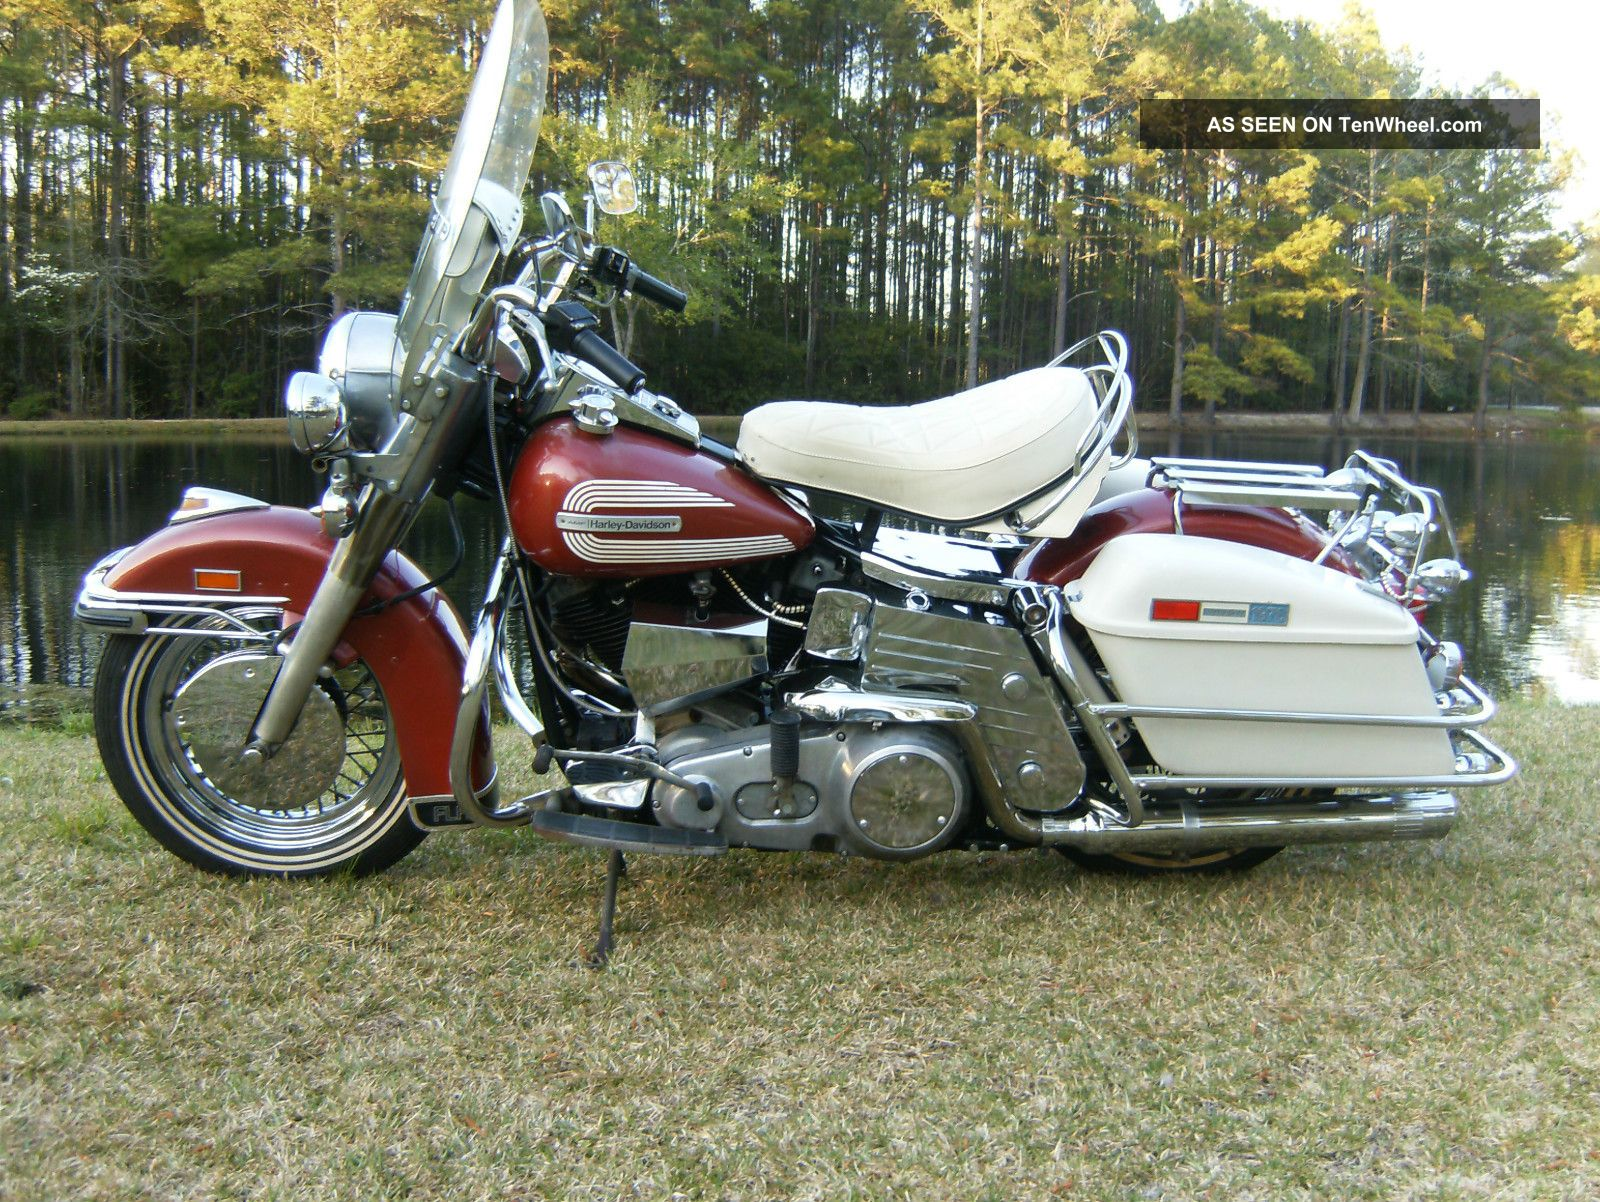 WRG-7679] Harley Davidson 1976 Flh Wiring Diagram on simplified plumbing diagram, simplified battery diagram, simplified clutch diagram,